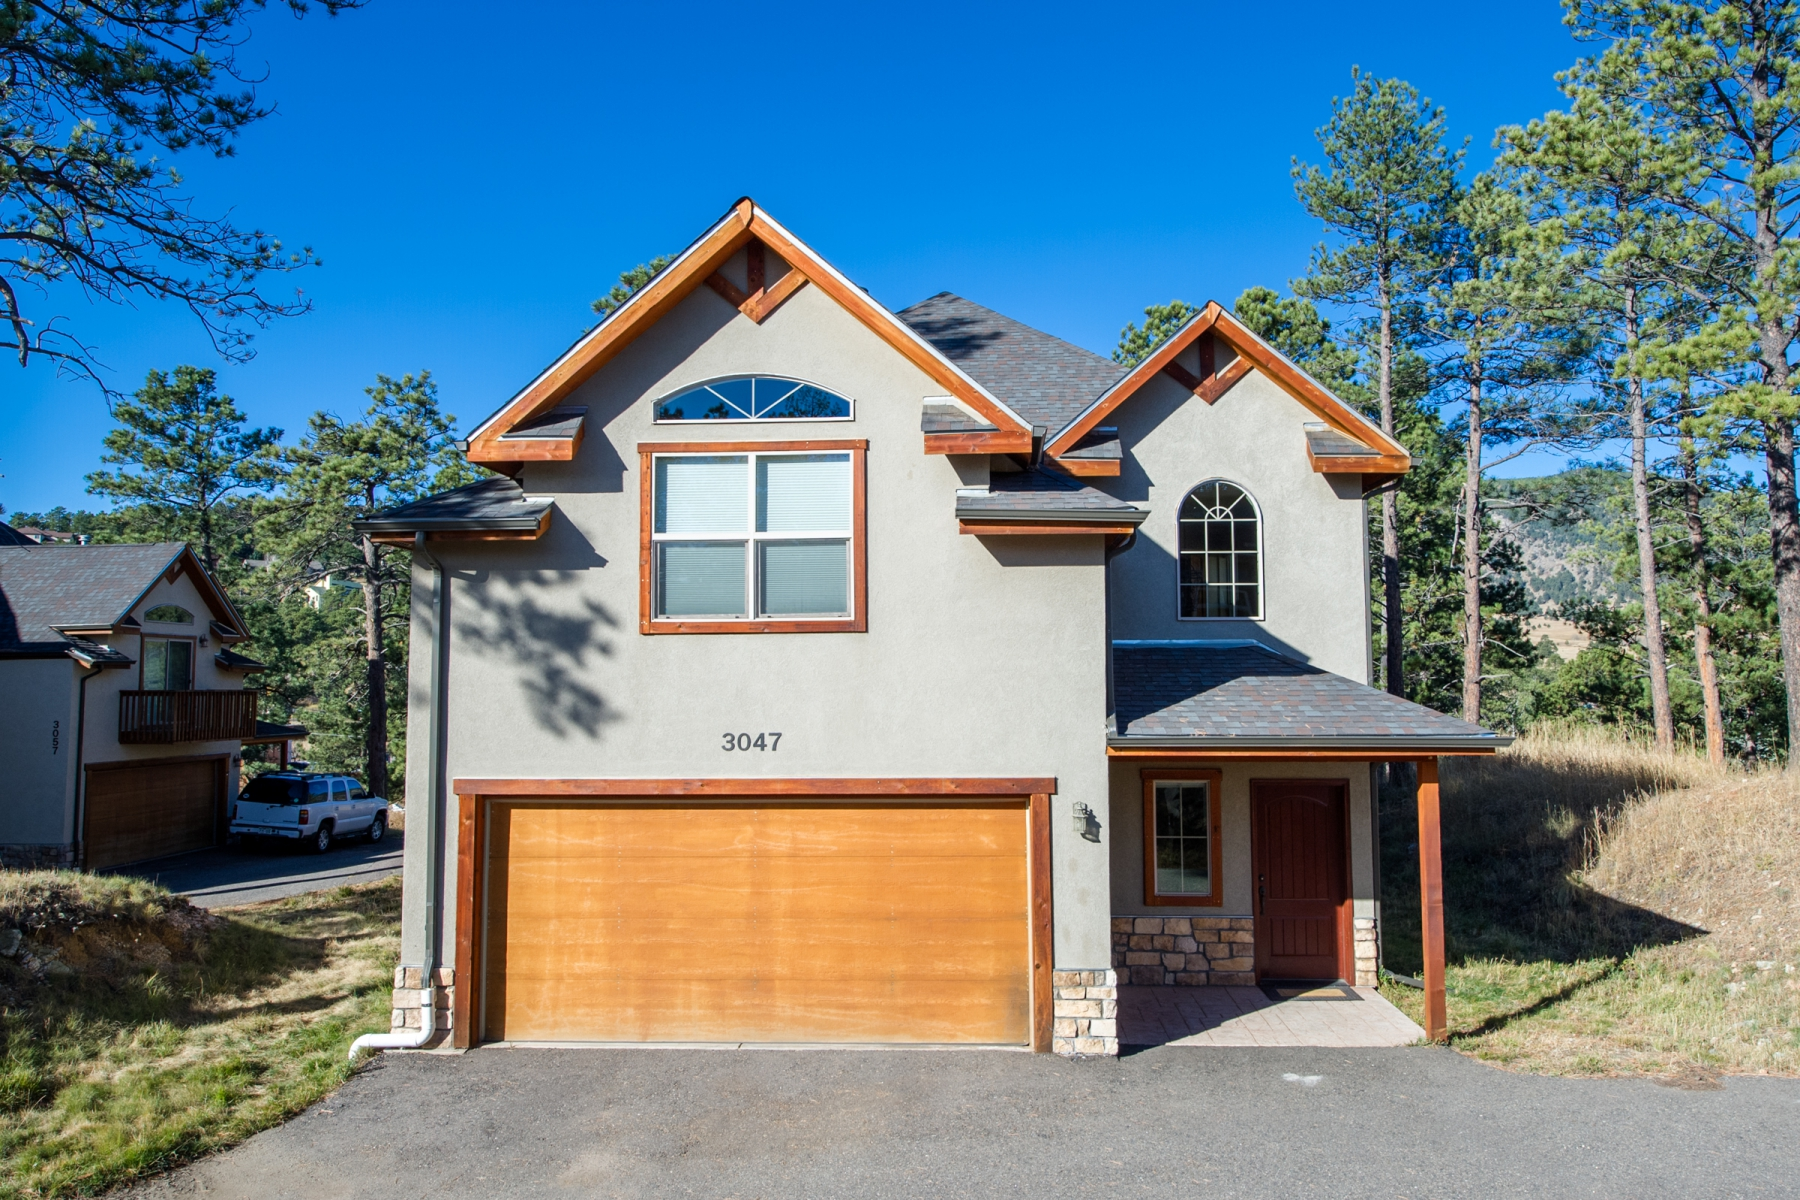 Townhouse for Sale at Extraordinary Duplex in the Heart of Evergreen 3047 Bergen Point Trail Evergreen, Colorado 80439 United States